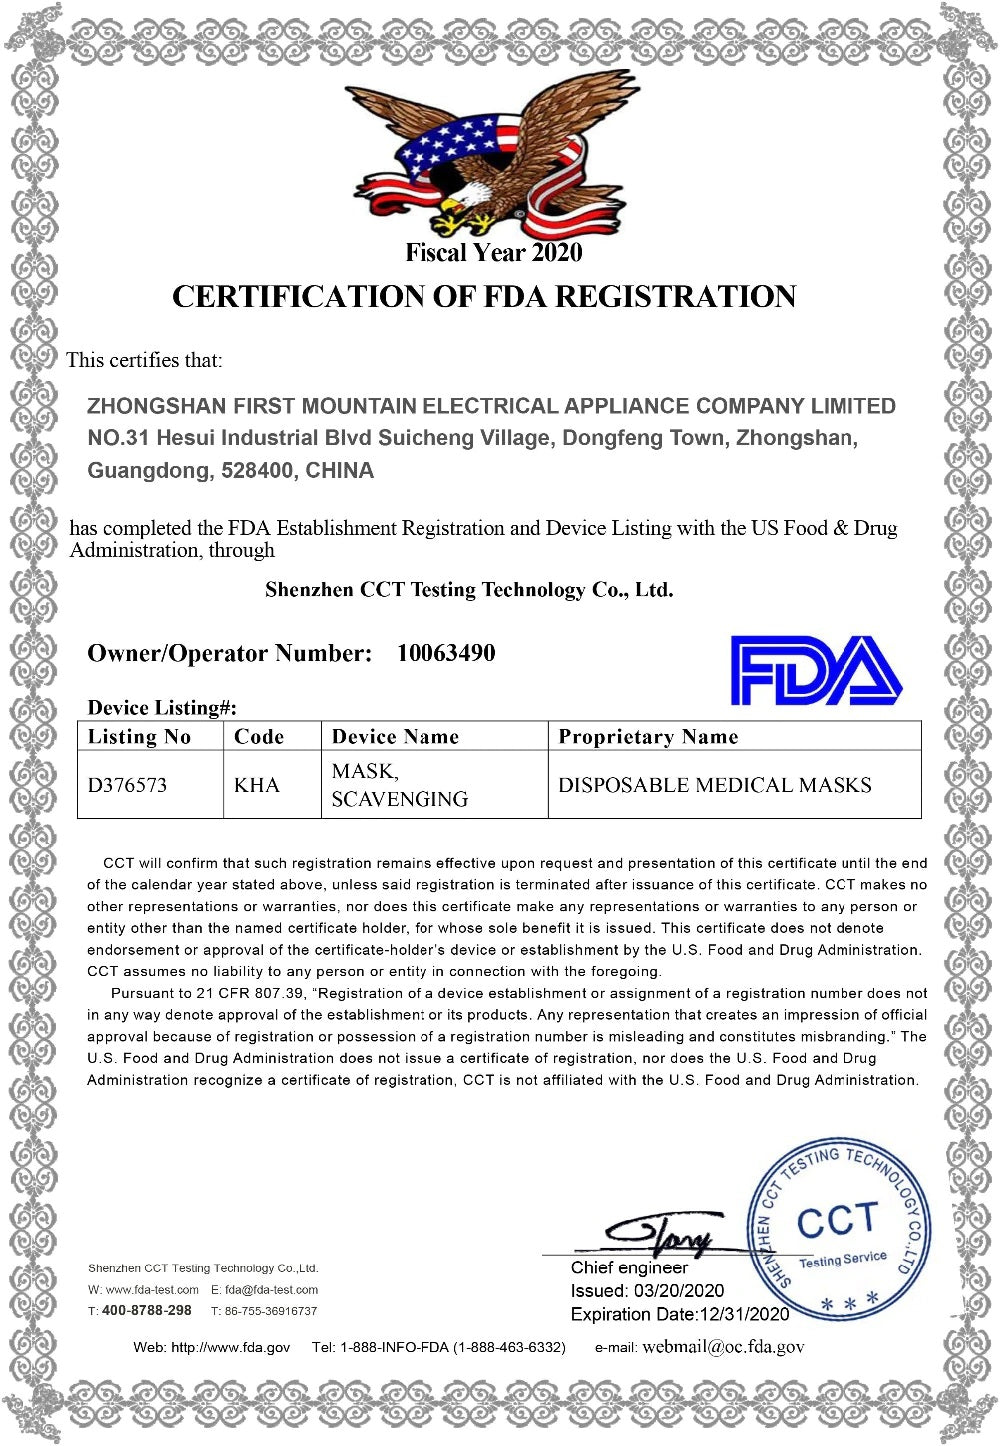 FDA certificate of 3Ply disposable mask